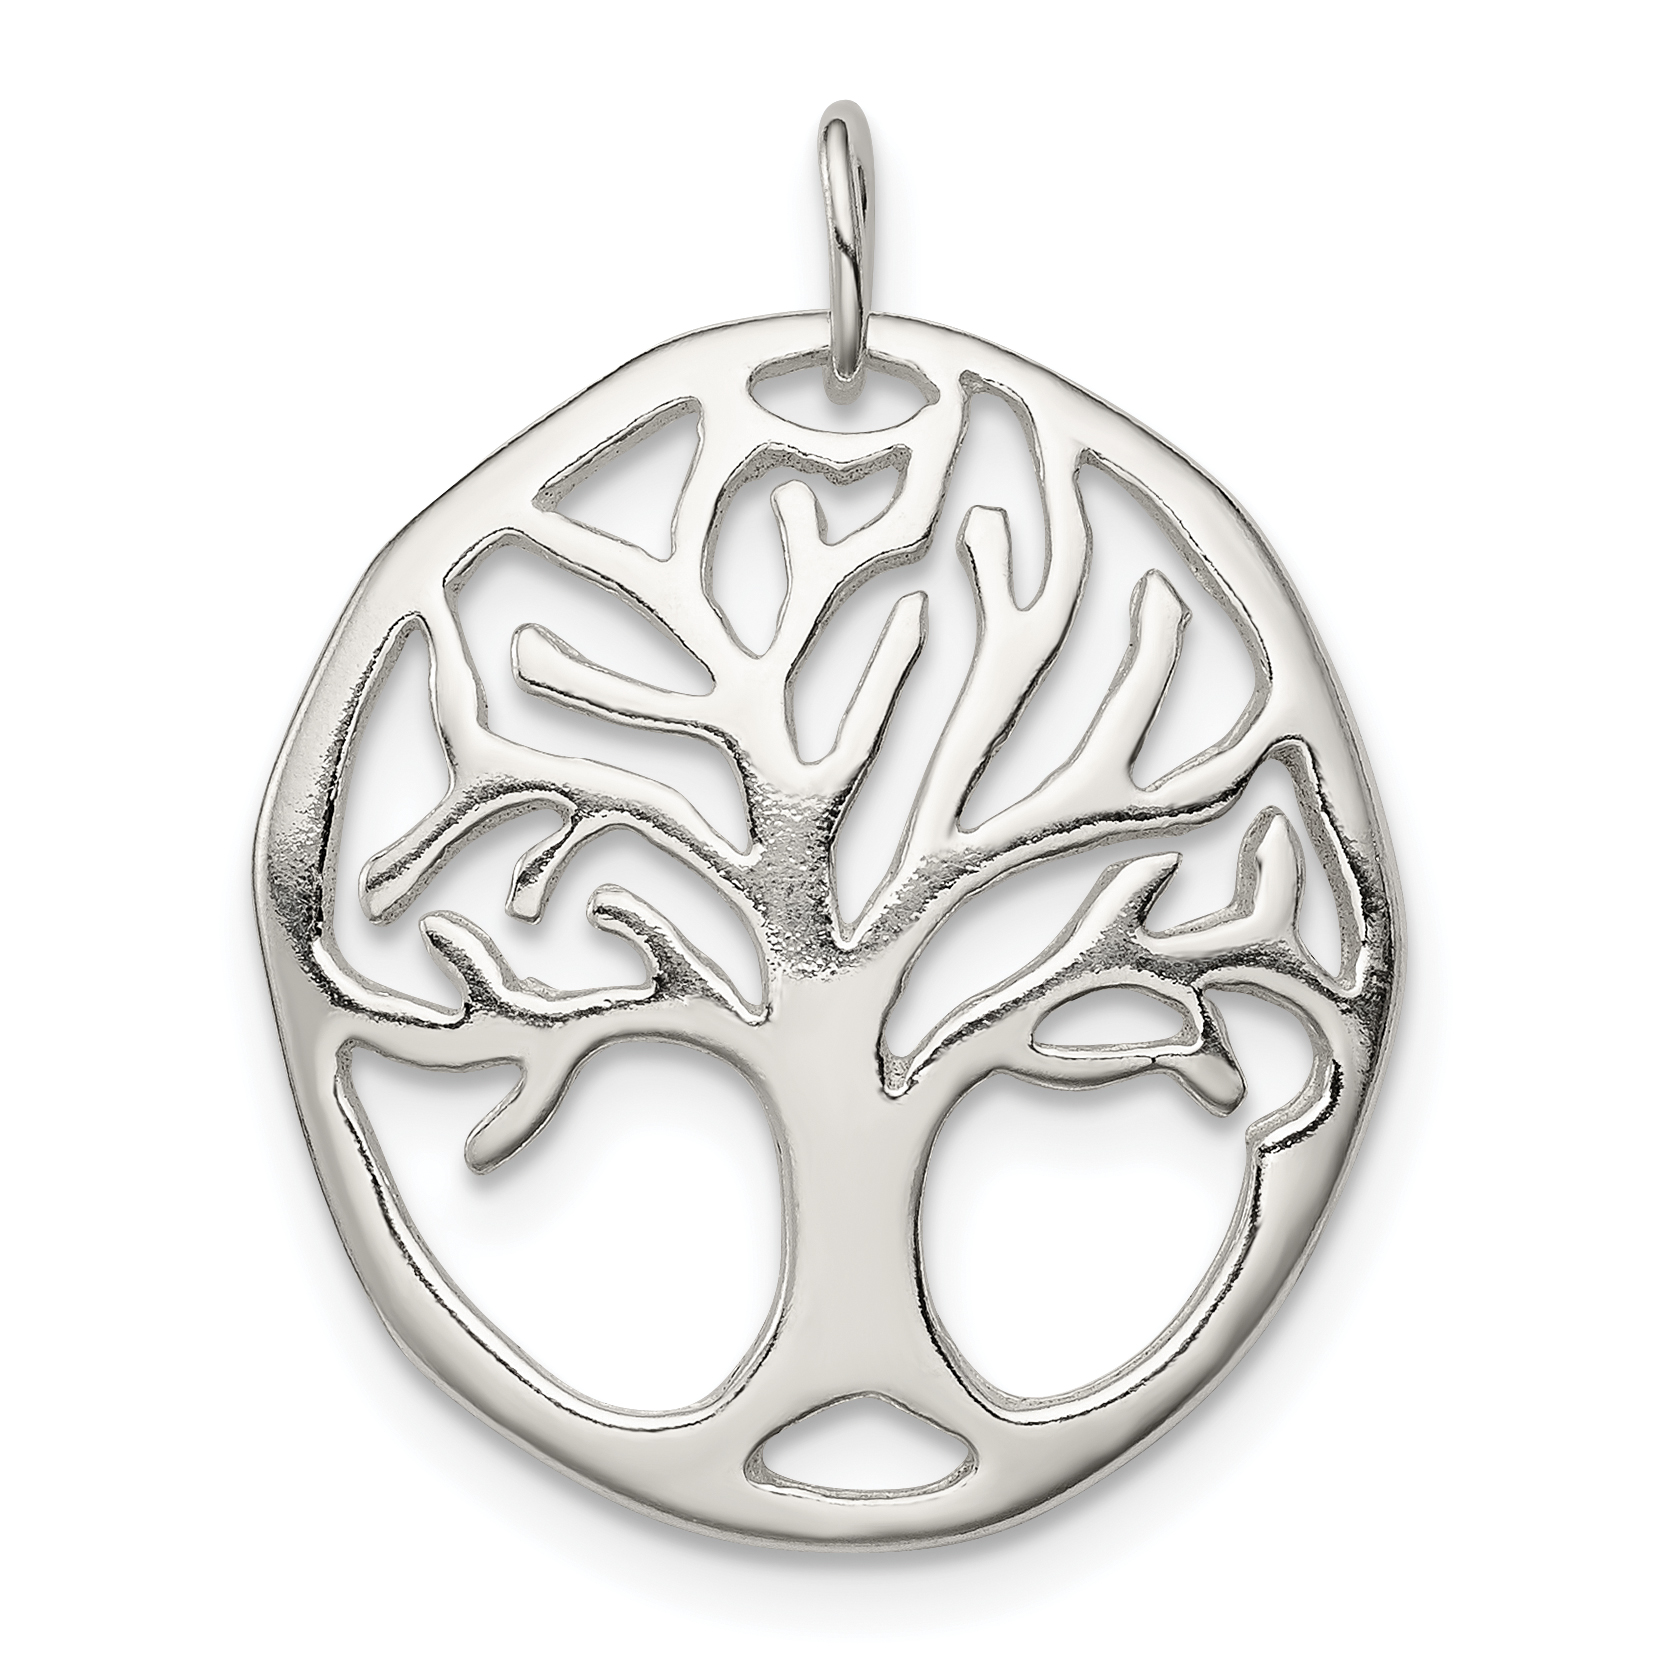 925 Sterling Silver Tree Of Life Pendant Charm Necklace Religious Spiritual/ Religion Fine Jewelry Gifts For Women For Her - image 2 of 2